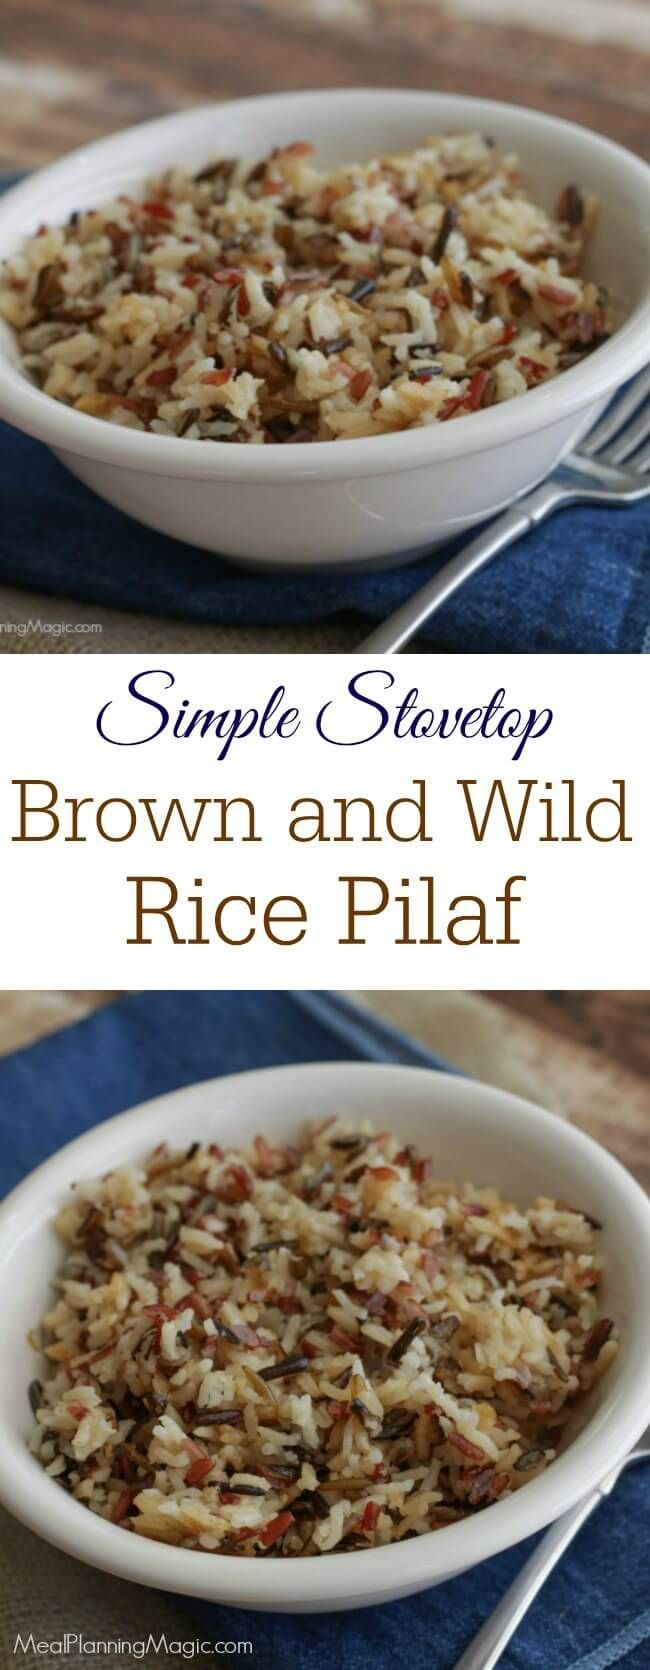 With only four ingredients including flavorful Parmesan cheese, this Simple Stovetop Brown and Wild Rice Pilaf is a perfect addition to any meal and full of flavor too! Recipe at MealPlanningMagic.com